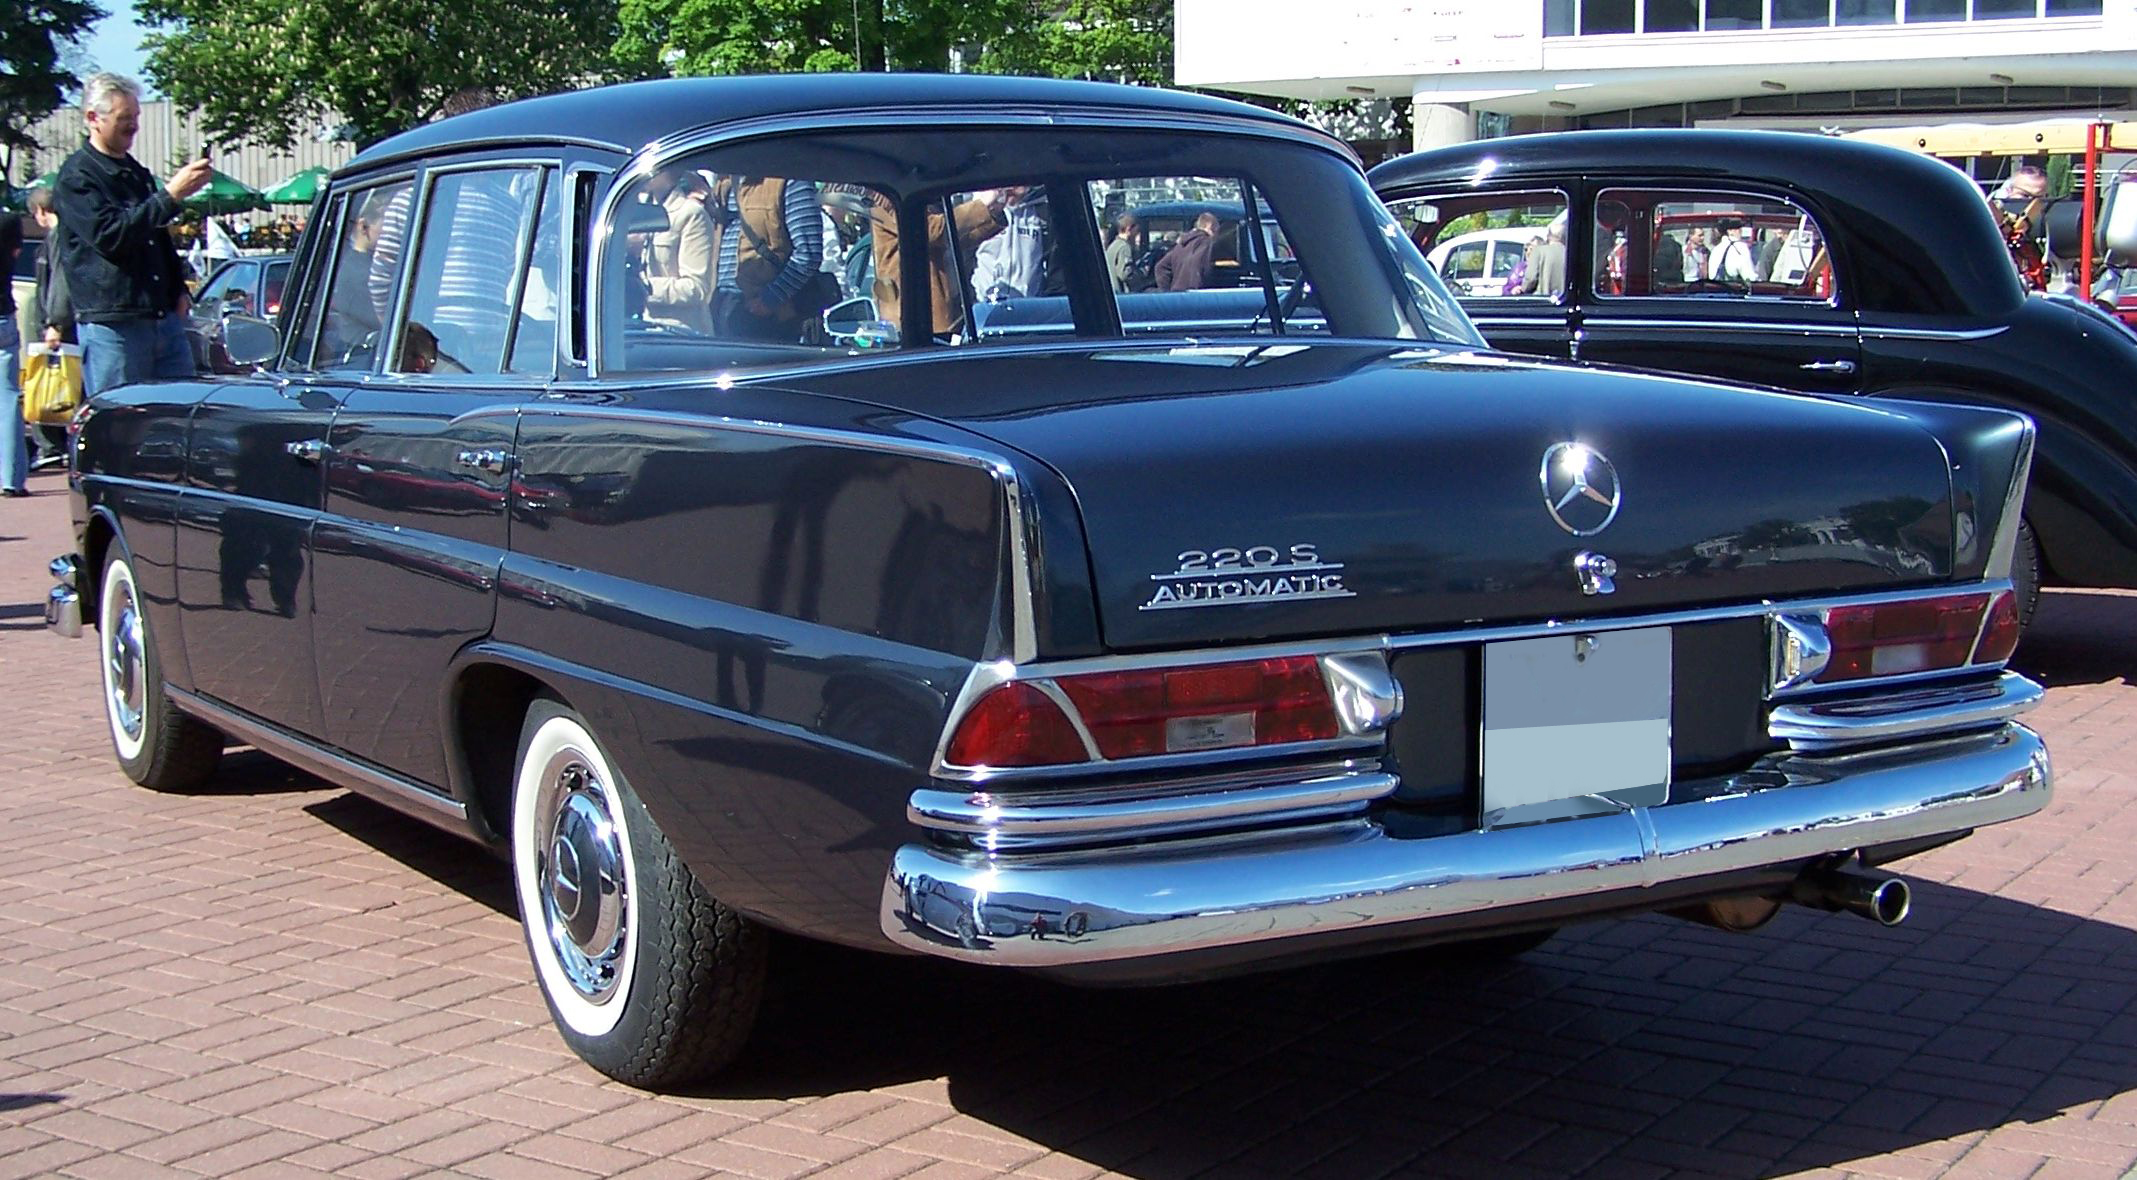 1960 mercedes benz 220 s w111 in the ray for Mercedes benz 220 s